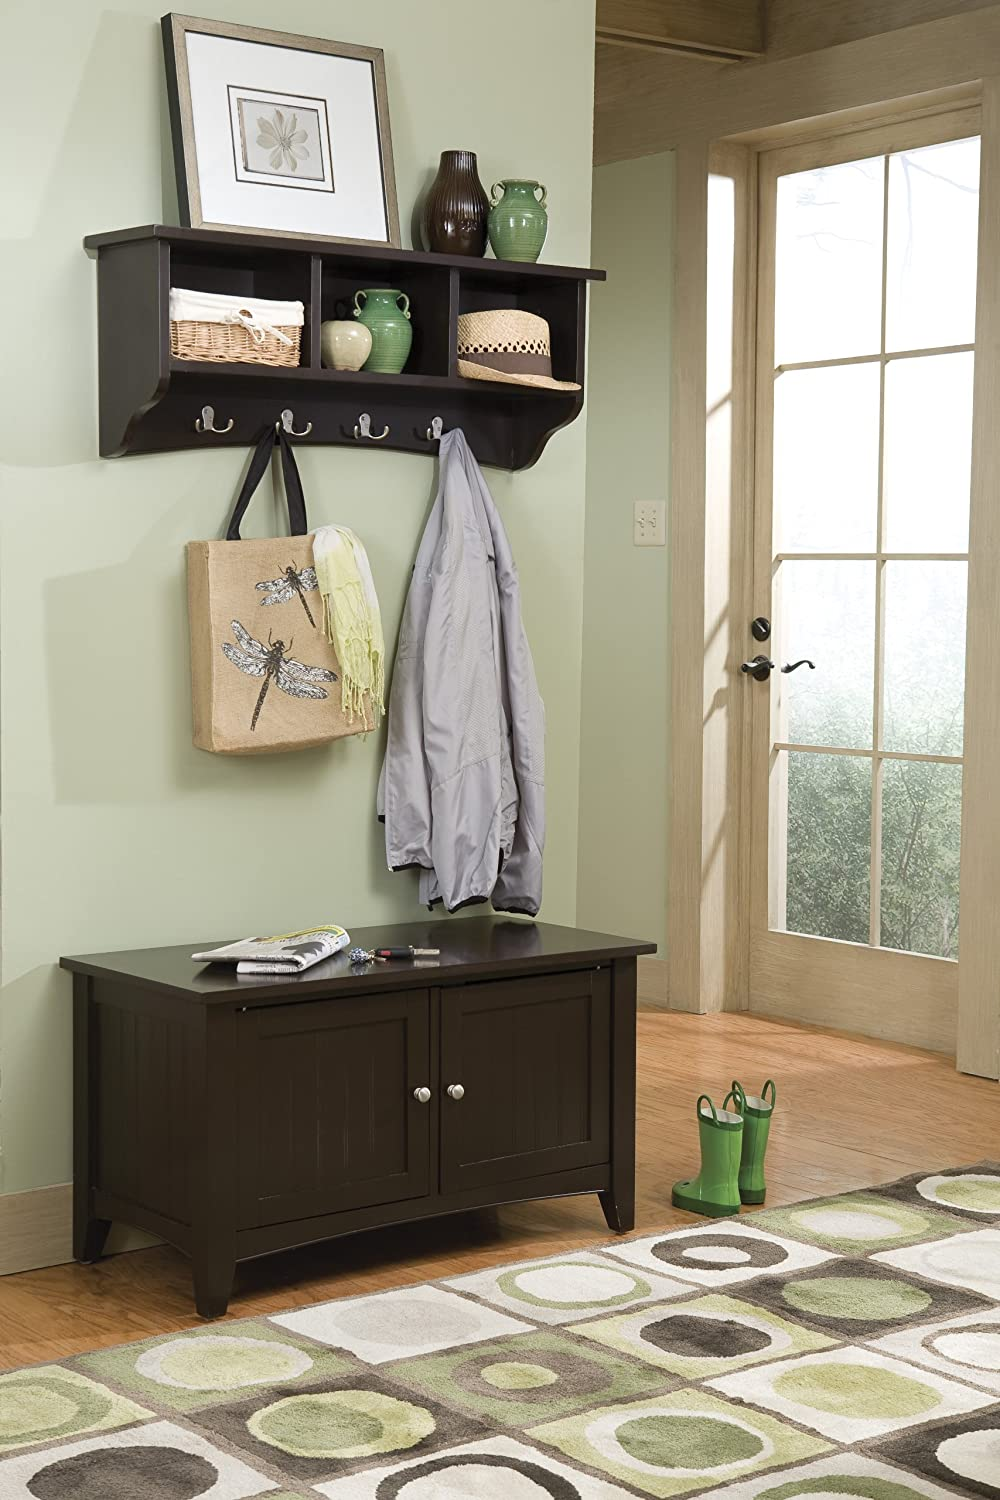 Alaterre Shaker Cottage Wall Mounted Coat Hook with 3 Cubbies and Storage Bench Cabinet Set, Chocolate